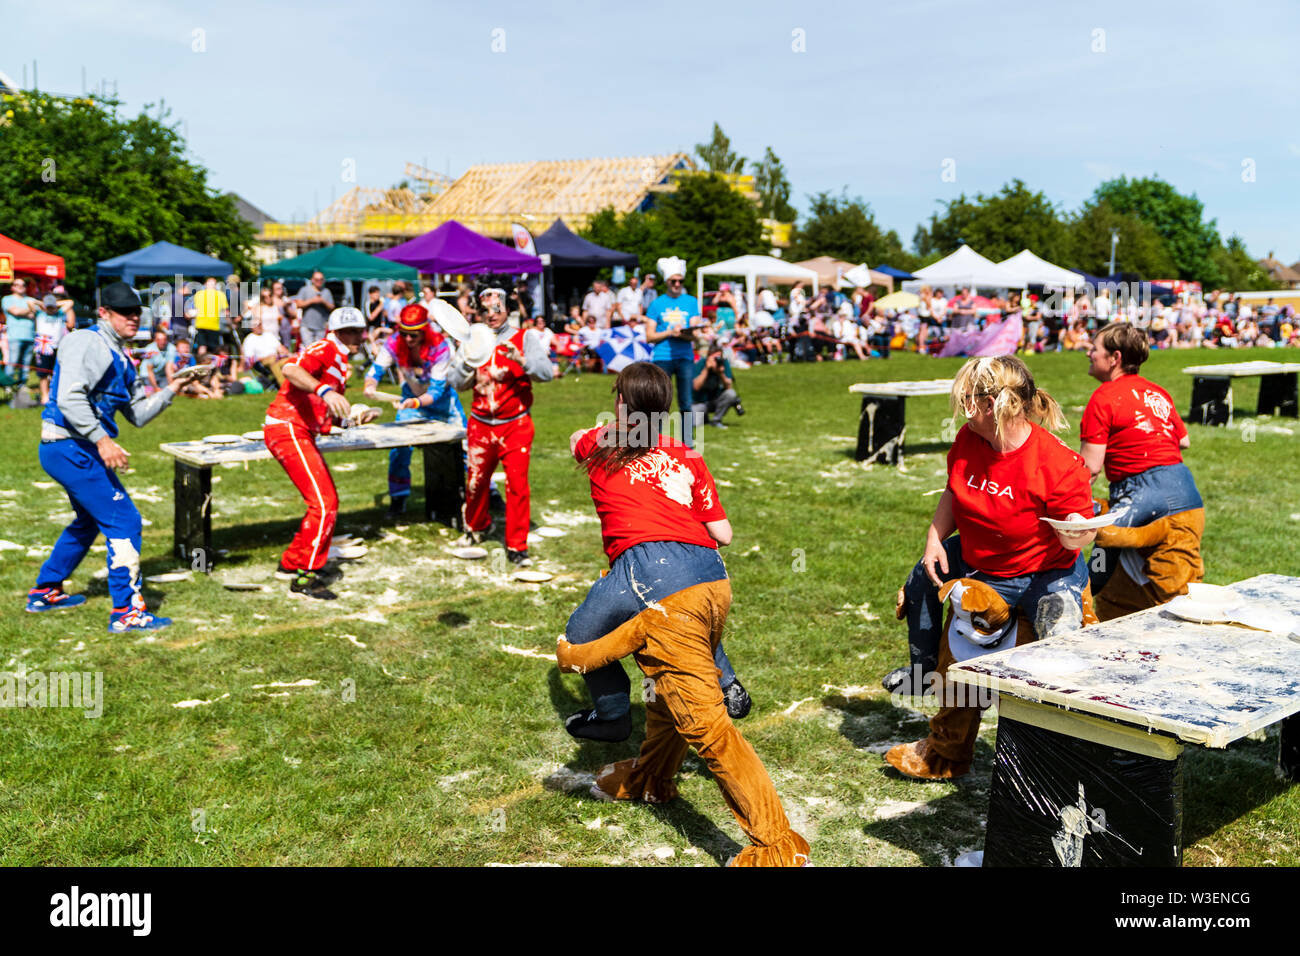 Coxheath, England. 1st June 2019. World Custard Pie Championships now in its 52nd year hosted by Mike Fitzgerald OBE. 30 teams, including some from Fr - Stock Image